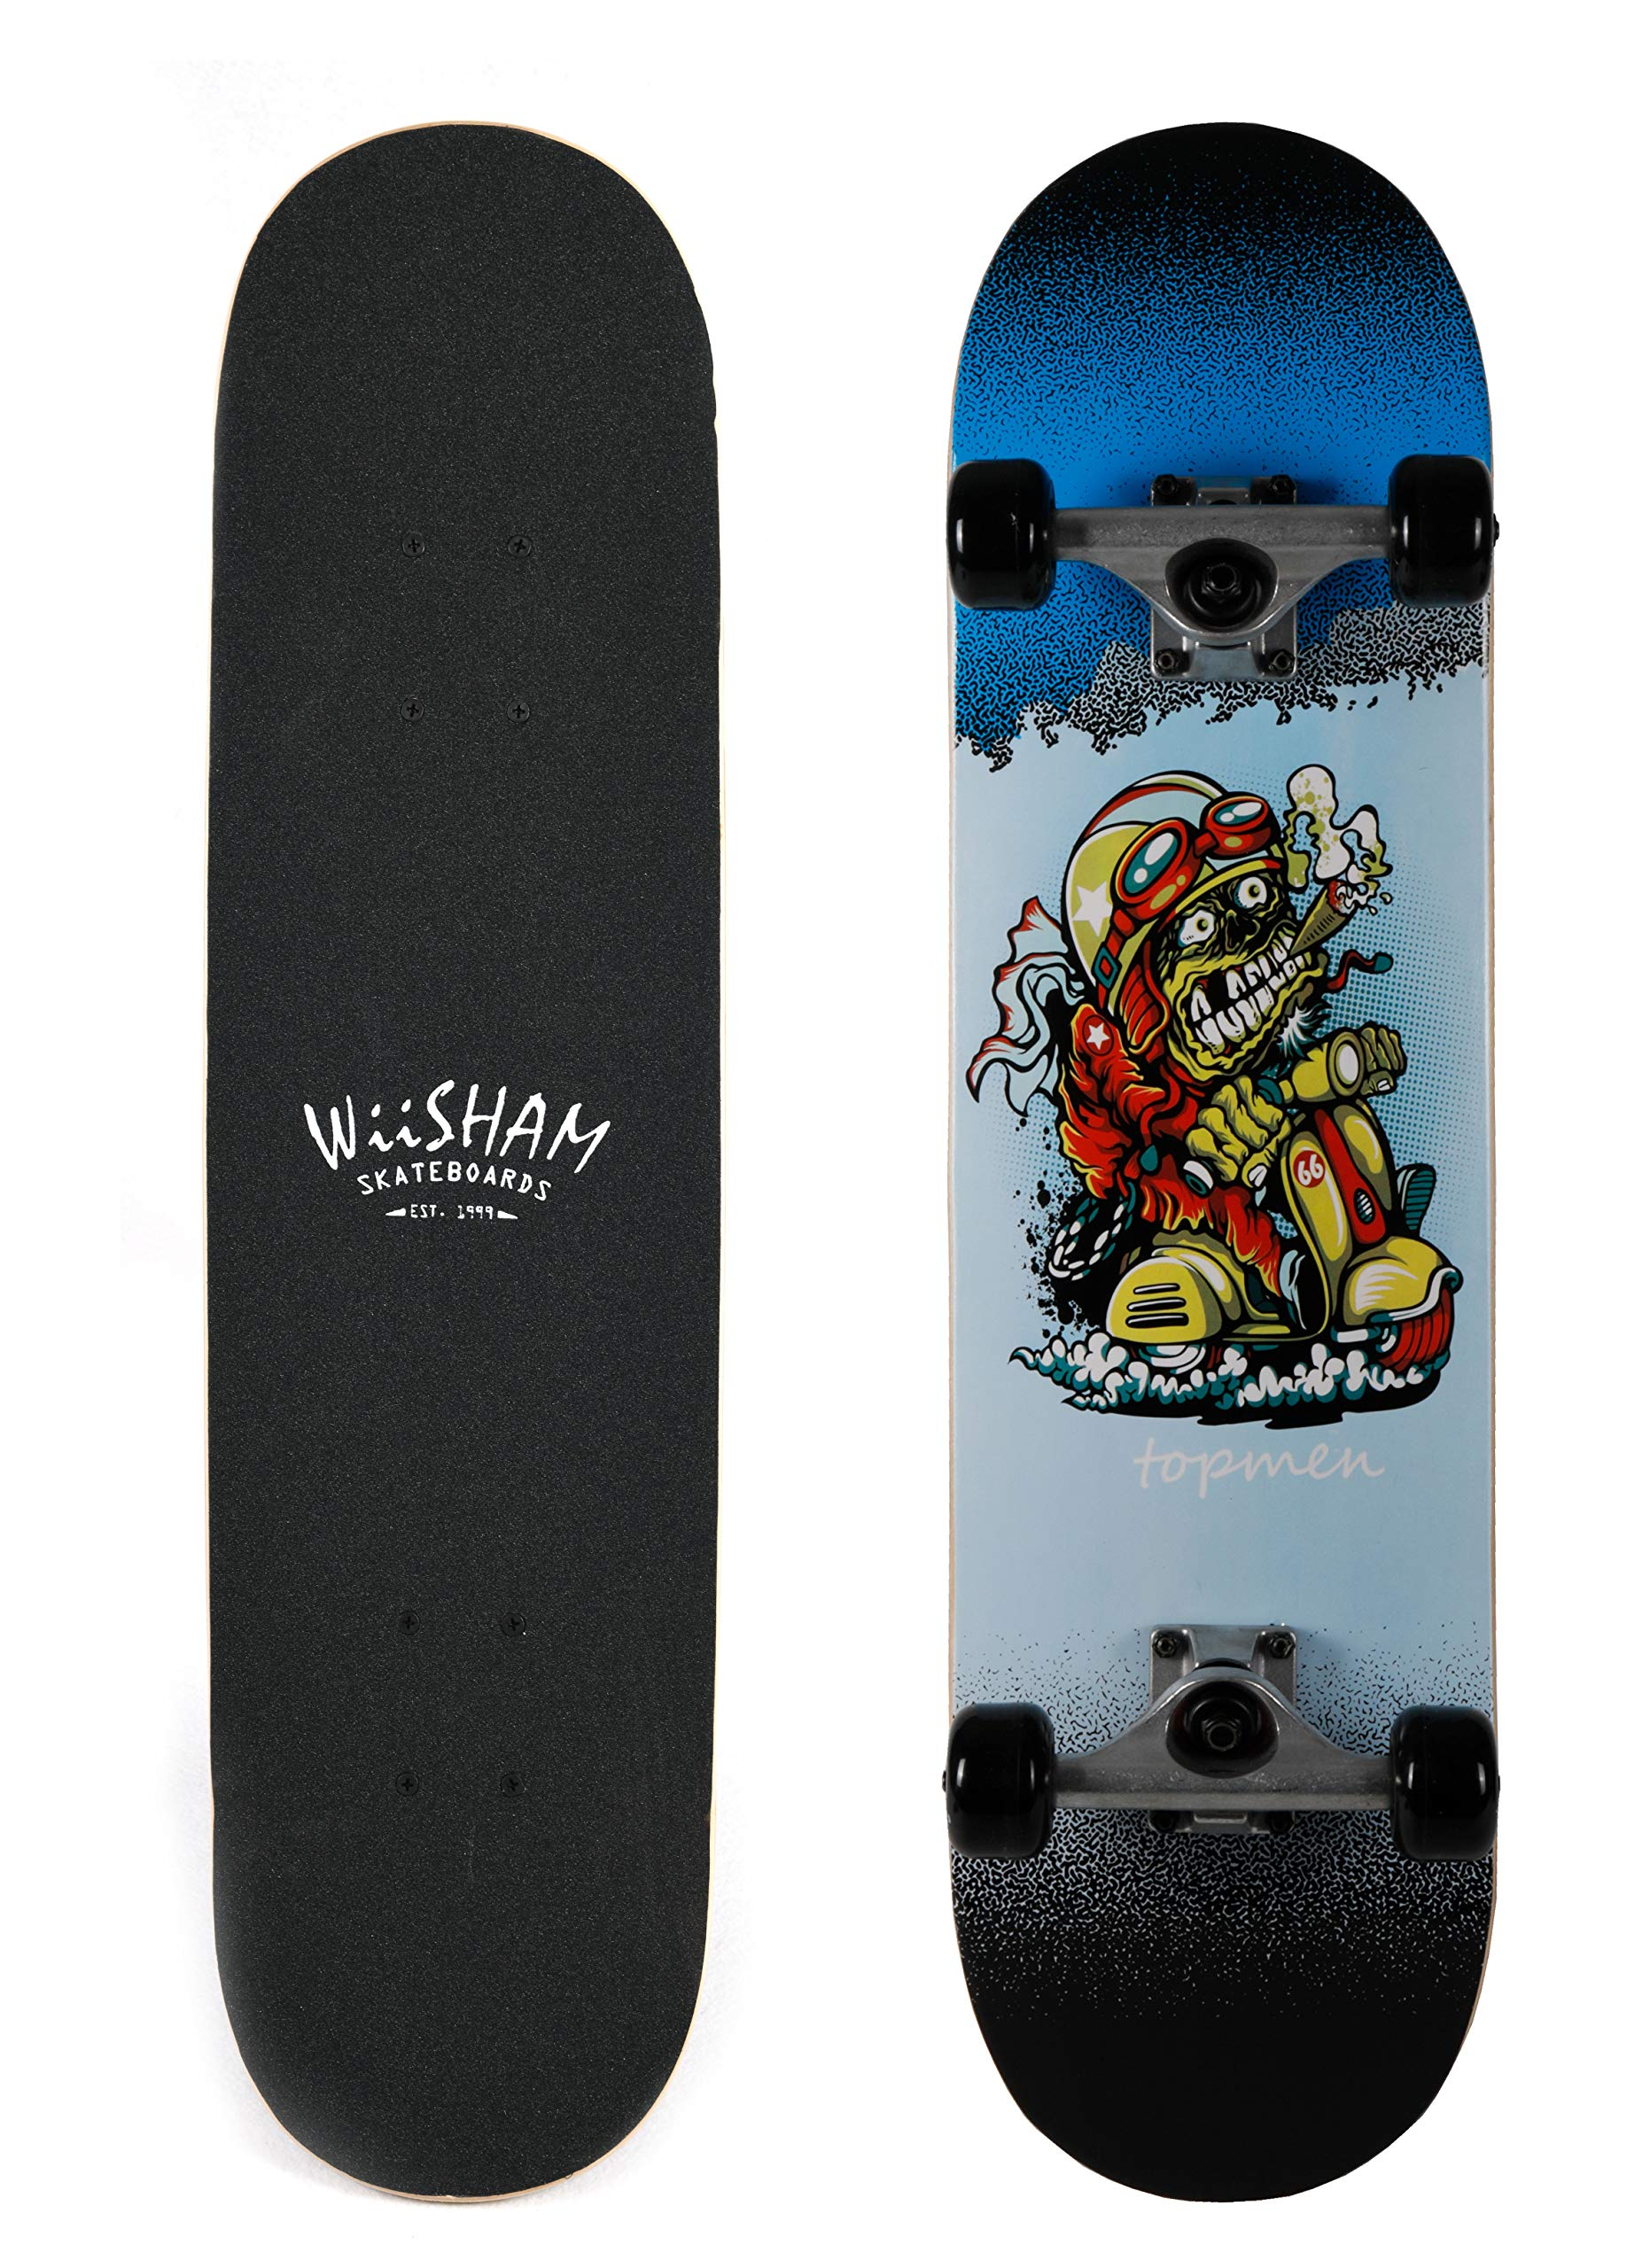 WiiSHAM Skateboards Pro 31 inches Complete Skateboards for Teens, Beginners, Girls,Boys,Kids,Adults (27)